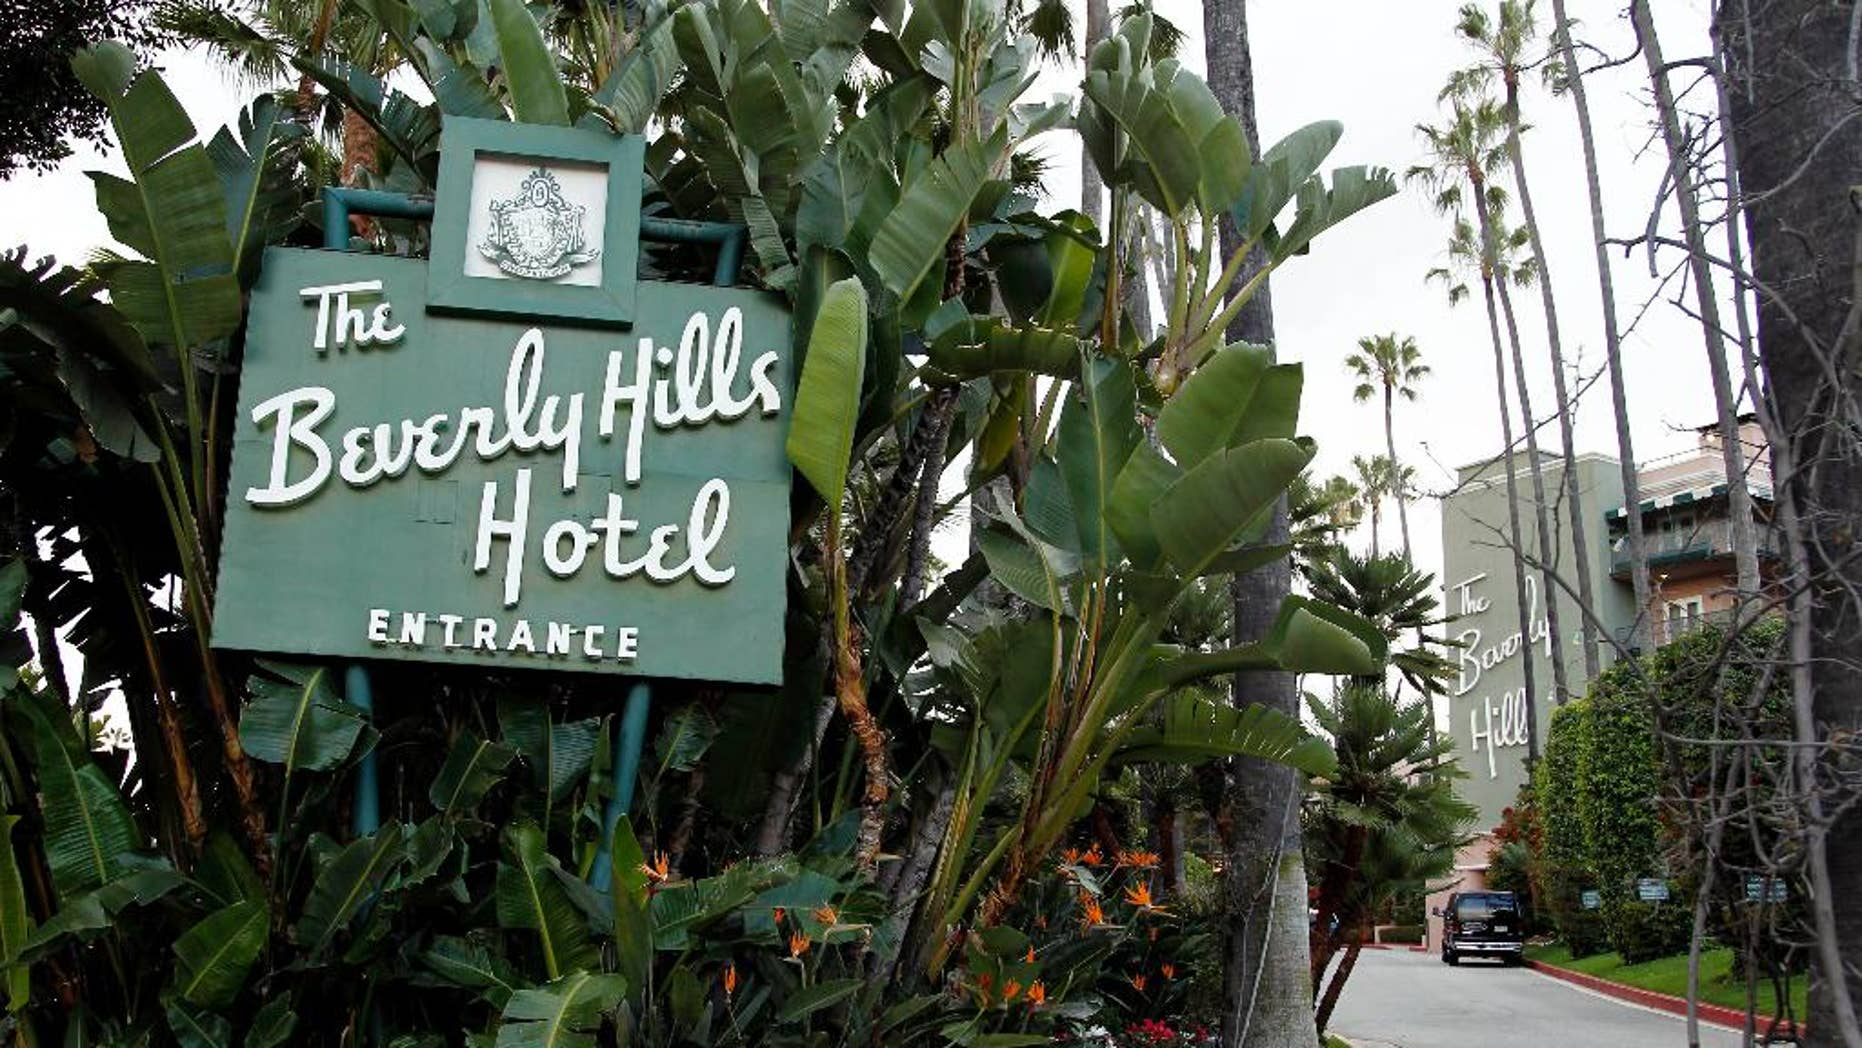 FILE - In this April 25, 2012 file photo, the entrance to the Beverly Hills Hotel is seen in Beverly Hills, Calif.  Hollywood is responding to harsh new laws in Brunei by boycotting the Beverly Hills Hotel. The Motion Picture & Television Fund joined a growing list of organizations and individuals Monday, May 5, 2014, refusing to do business with hotels owned by the Sultan or government of Brunei to protest the country's new penal code that calls for punishing adultery, abortions and same-sex relationships with flogging and stoning.  (AP Photo/Matt Sayles, File)